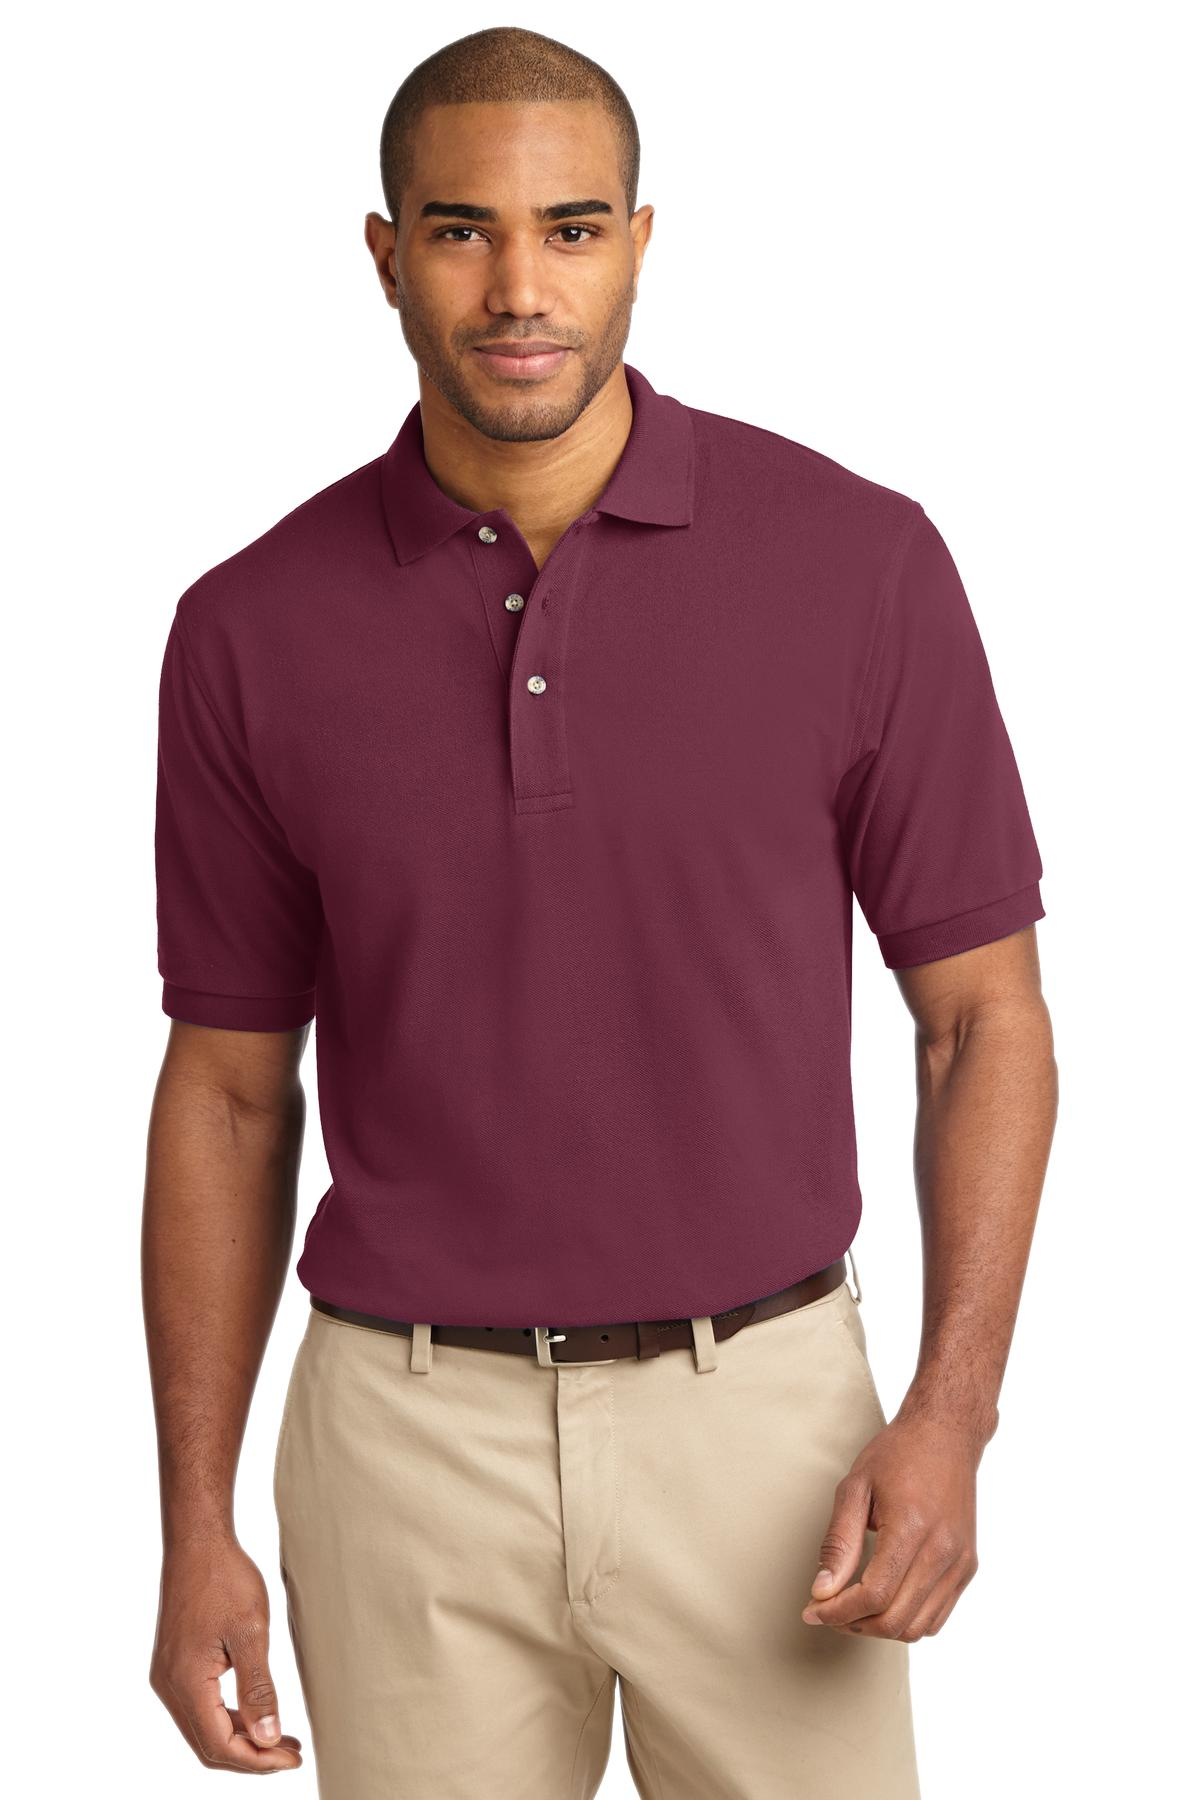 Port Authority® Heavyweight Cotton Pique Polo.-Port Authority